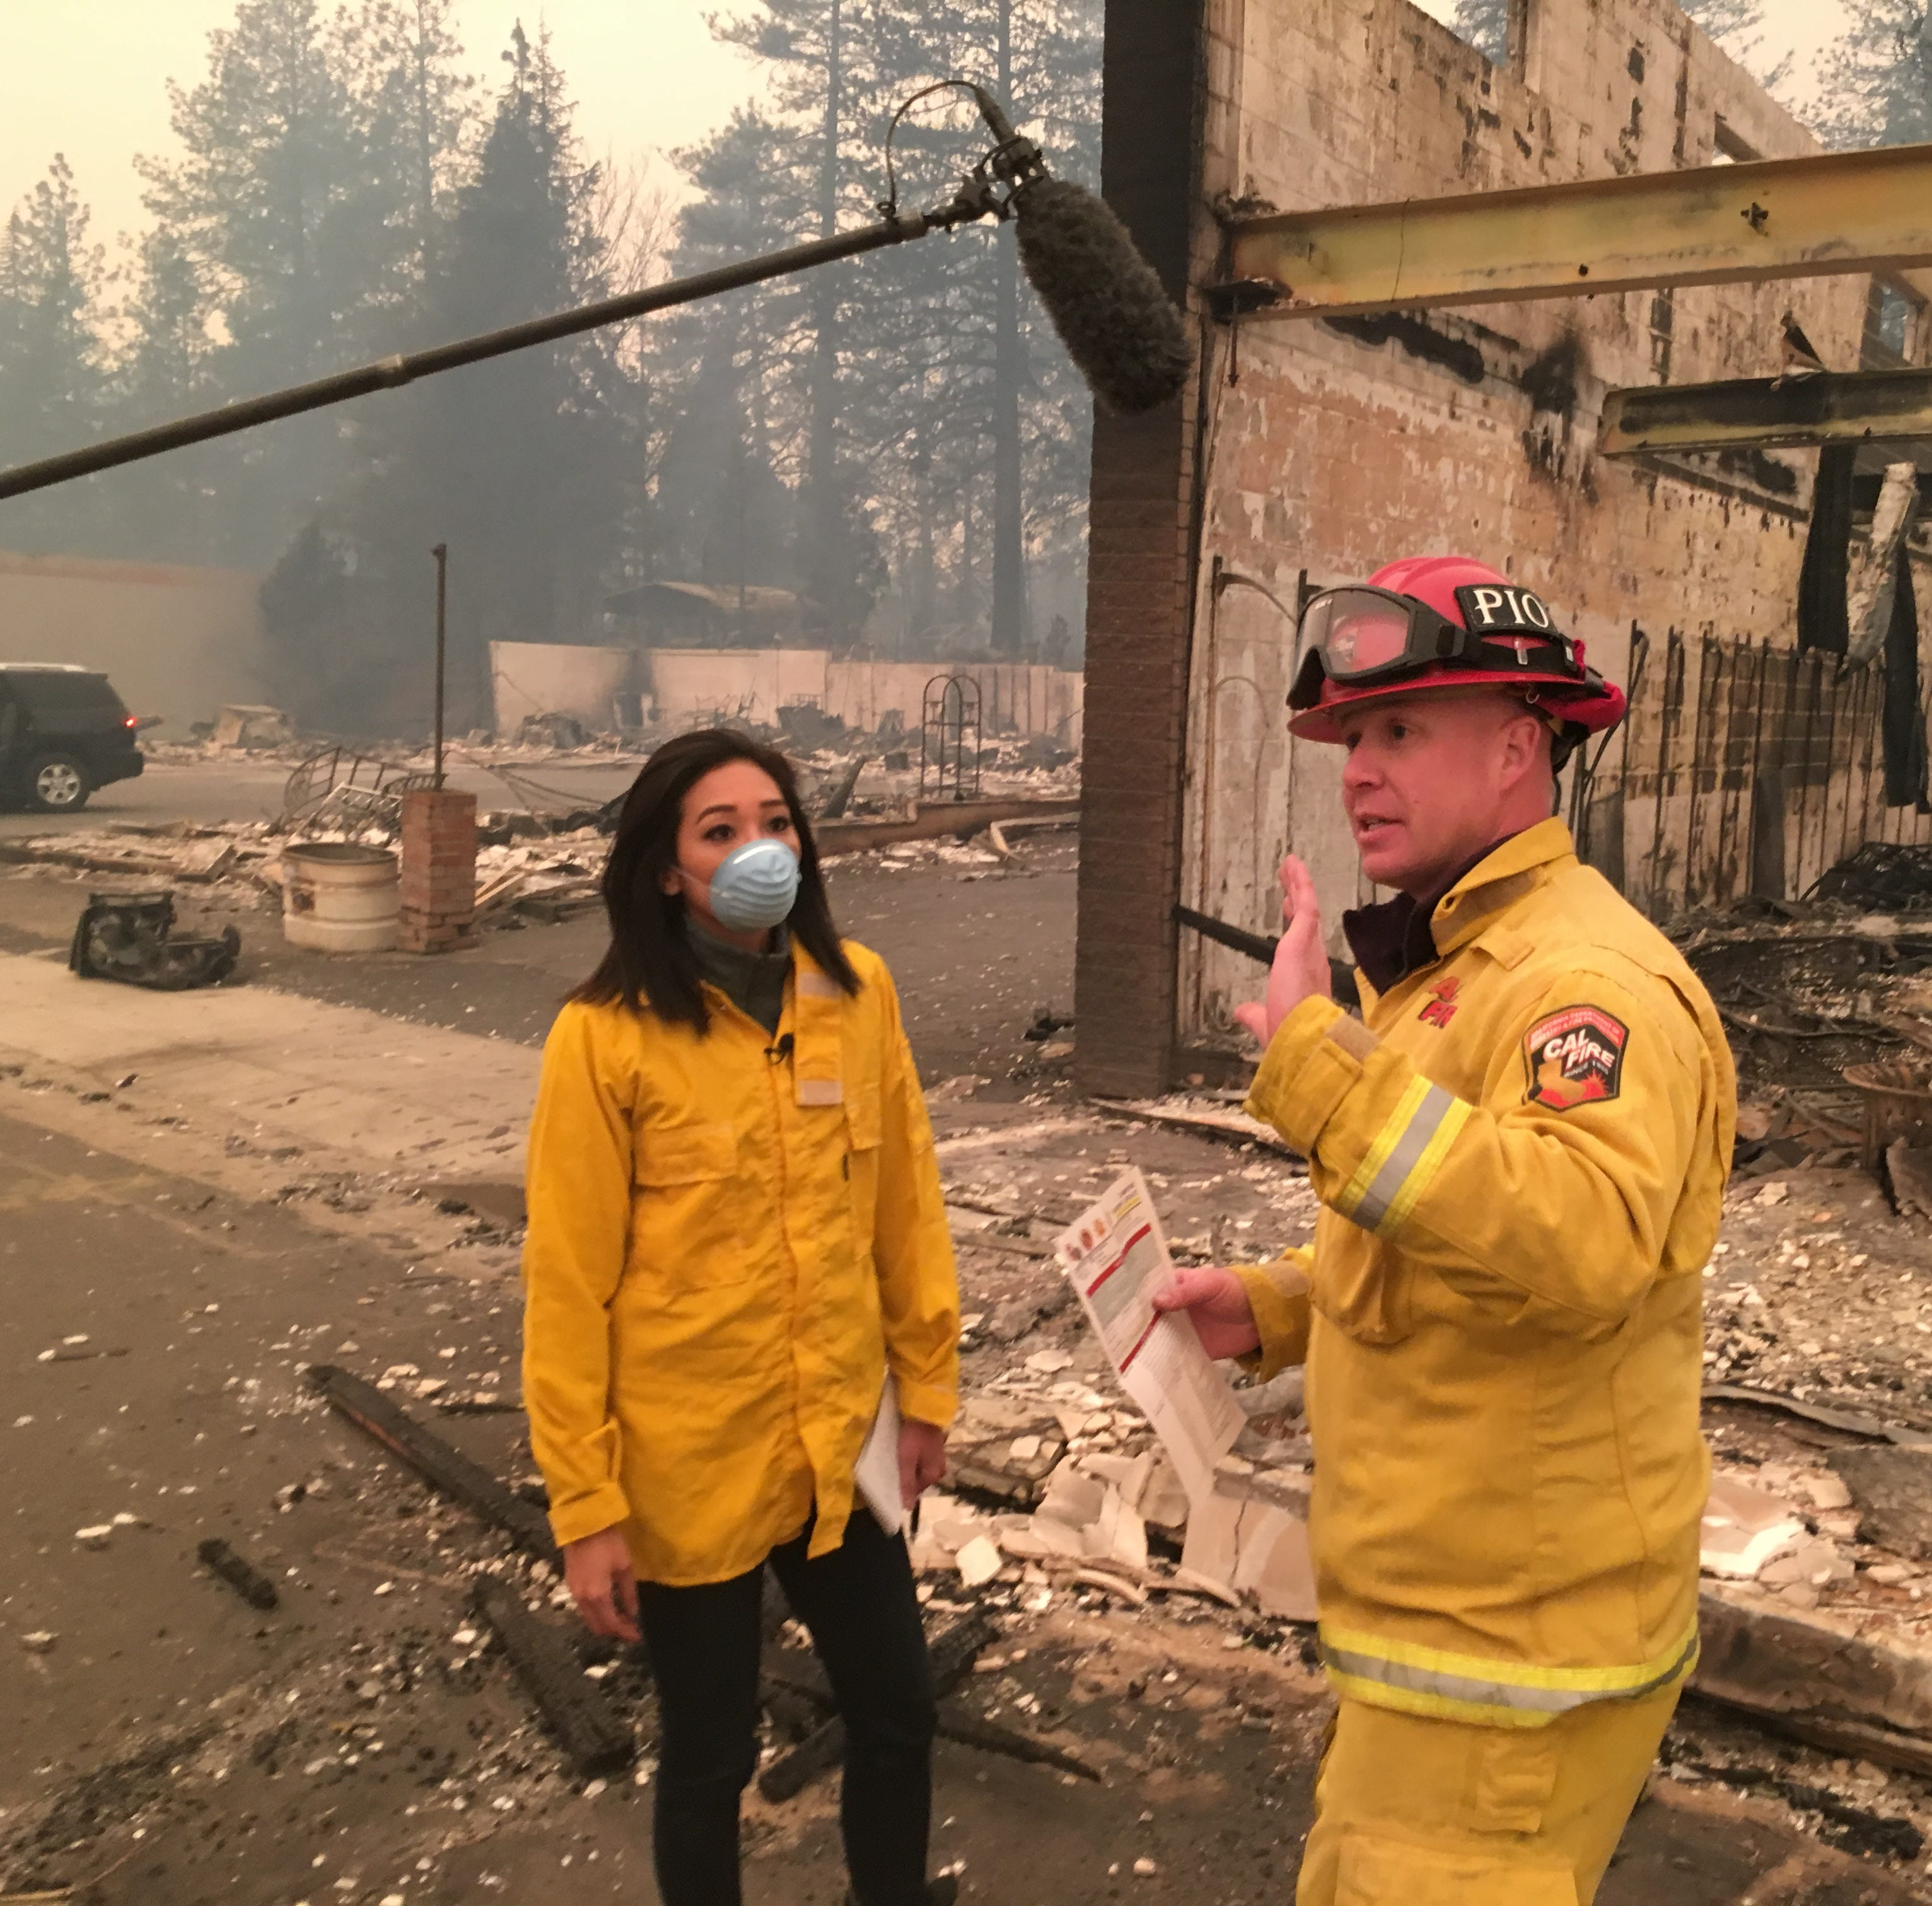 Camp Fire: How to help those in need after California fire